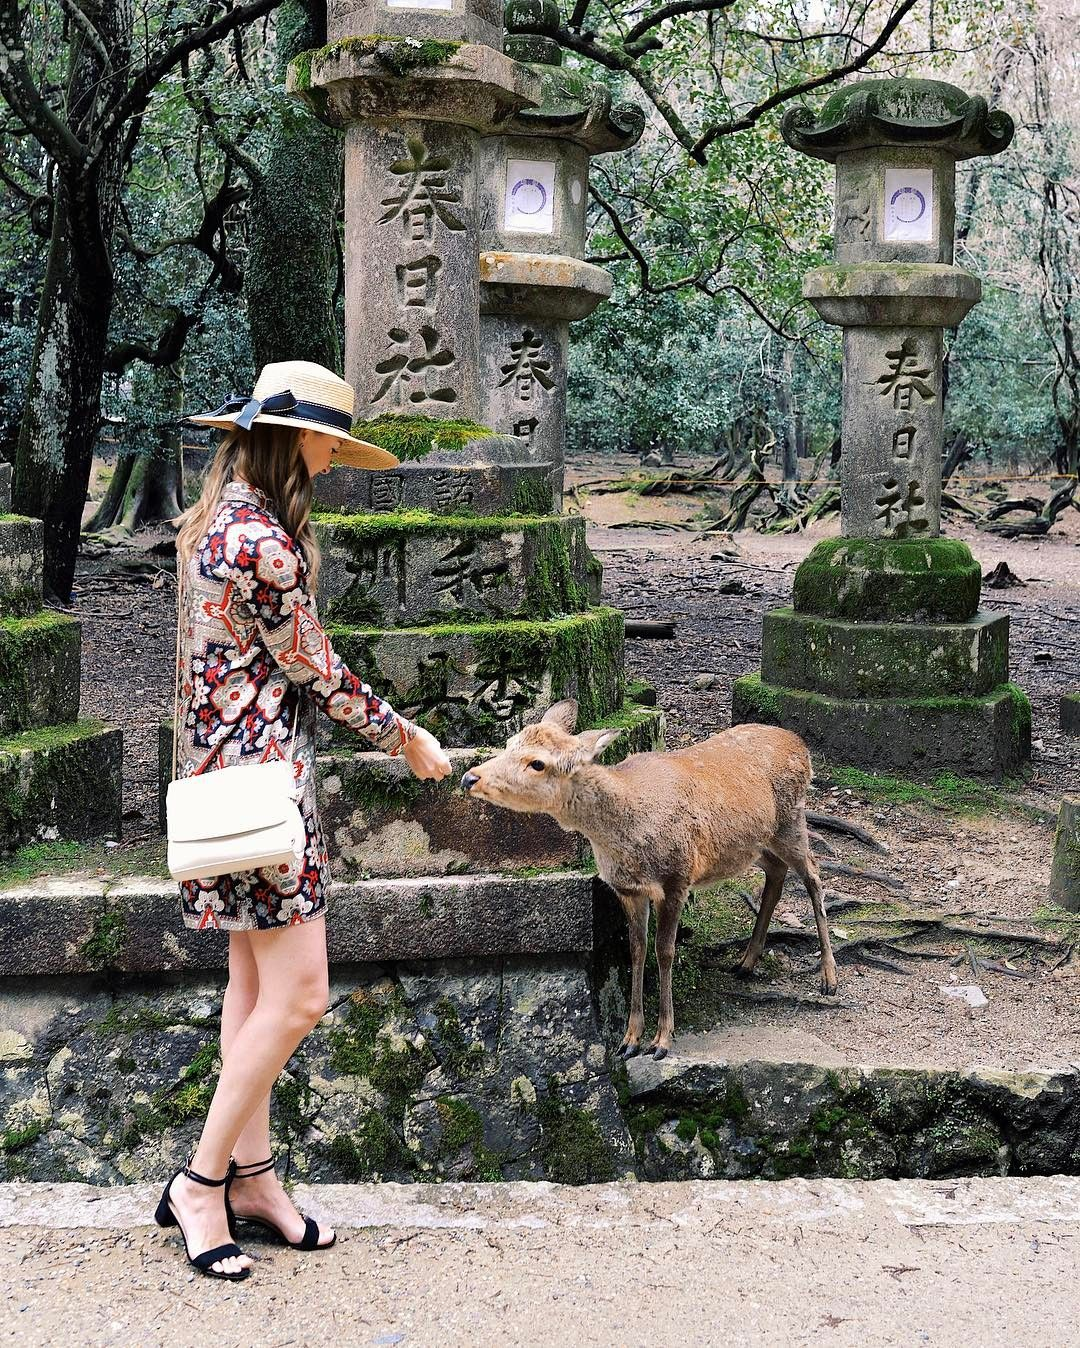 Making new friends in Nara Park. 🦌 #flinnersinjapan